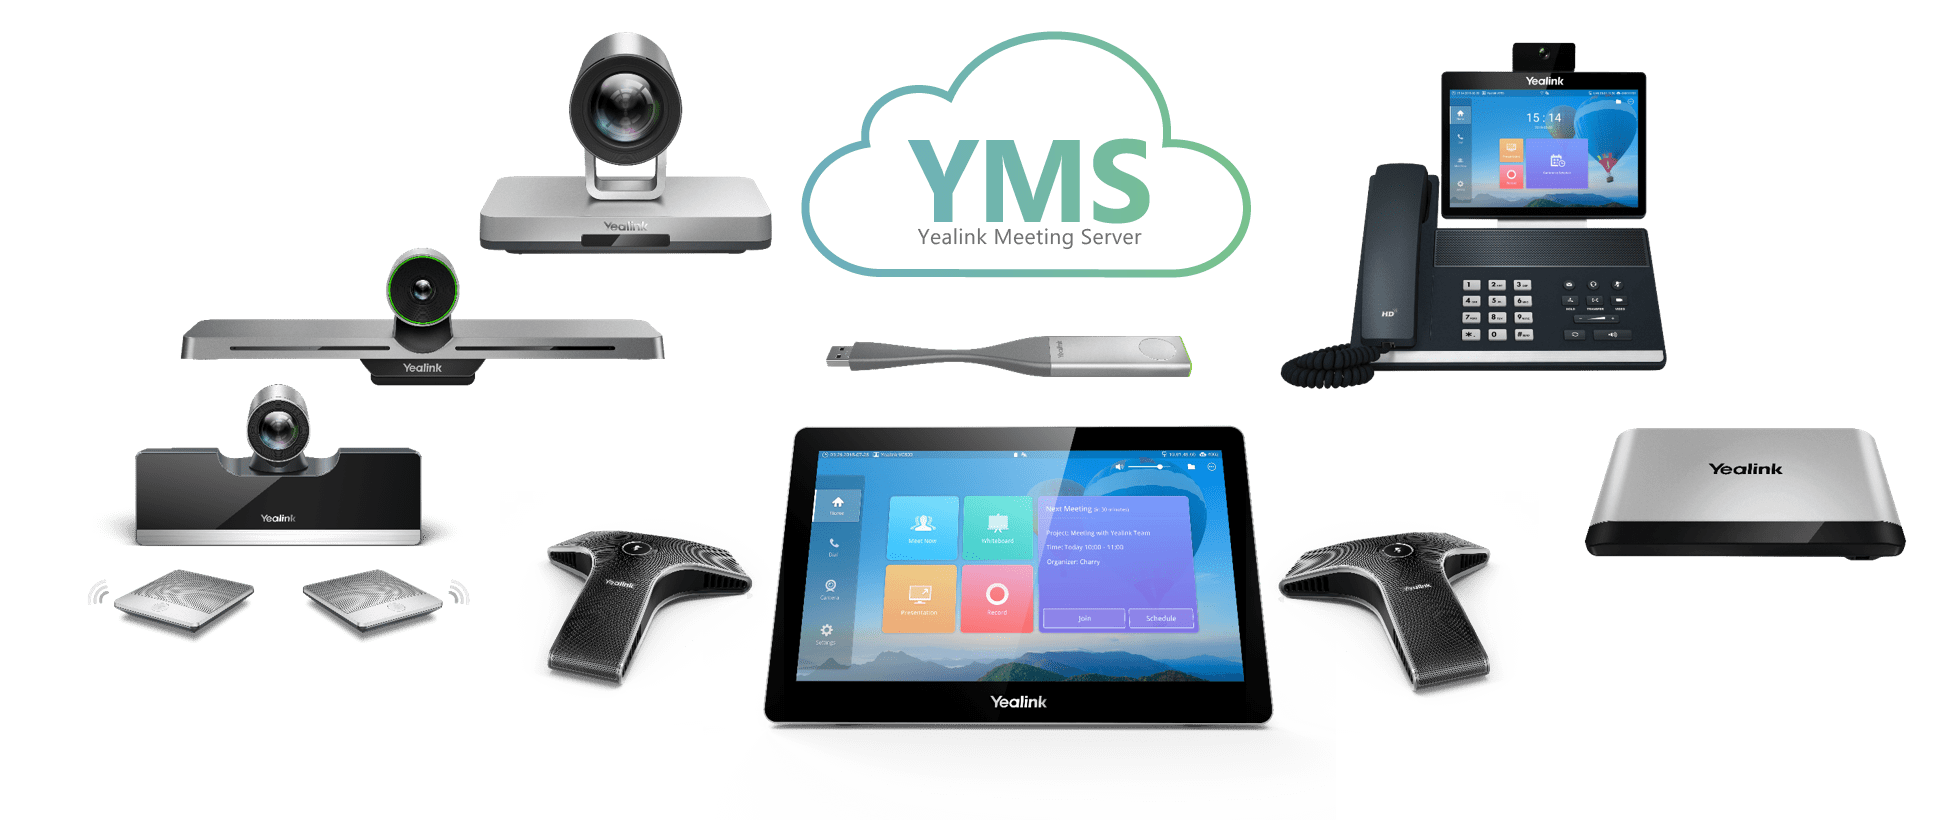 Yealink, One Stop Video Conferencing Solution - Incentive program 1